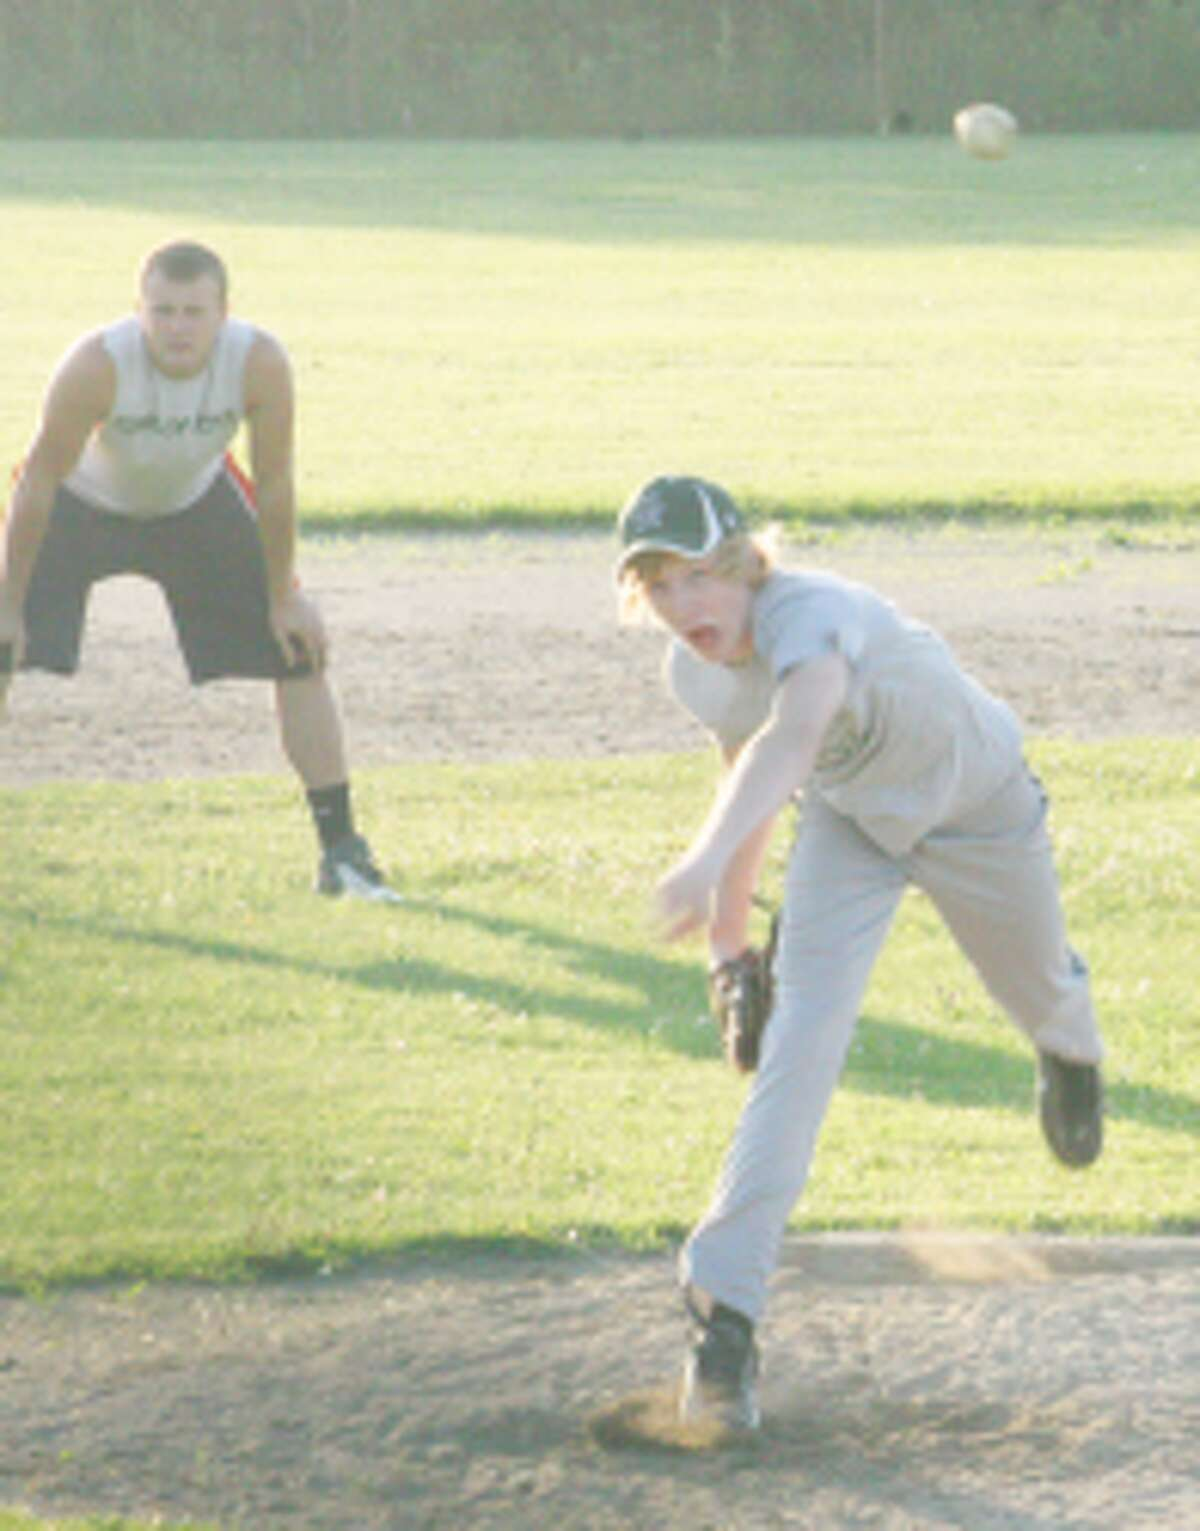 summer games: Payton Pacola delivers a pitch for Pine River during a recent summer game. (File photo)